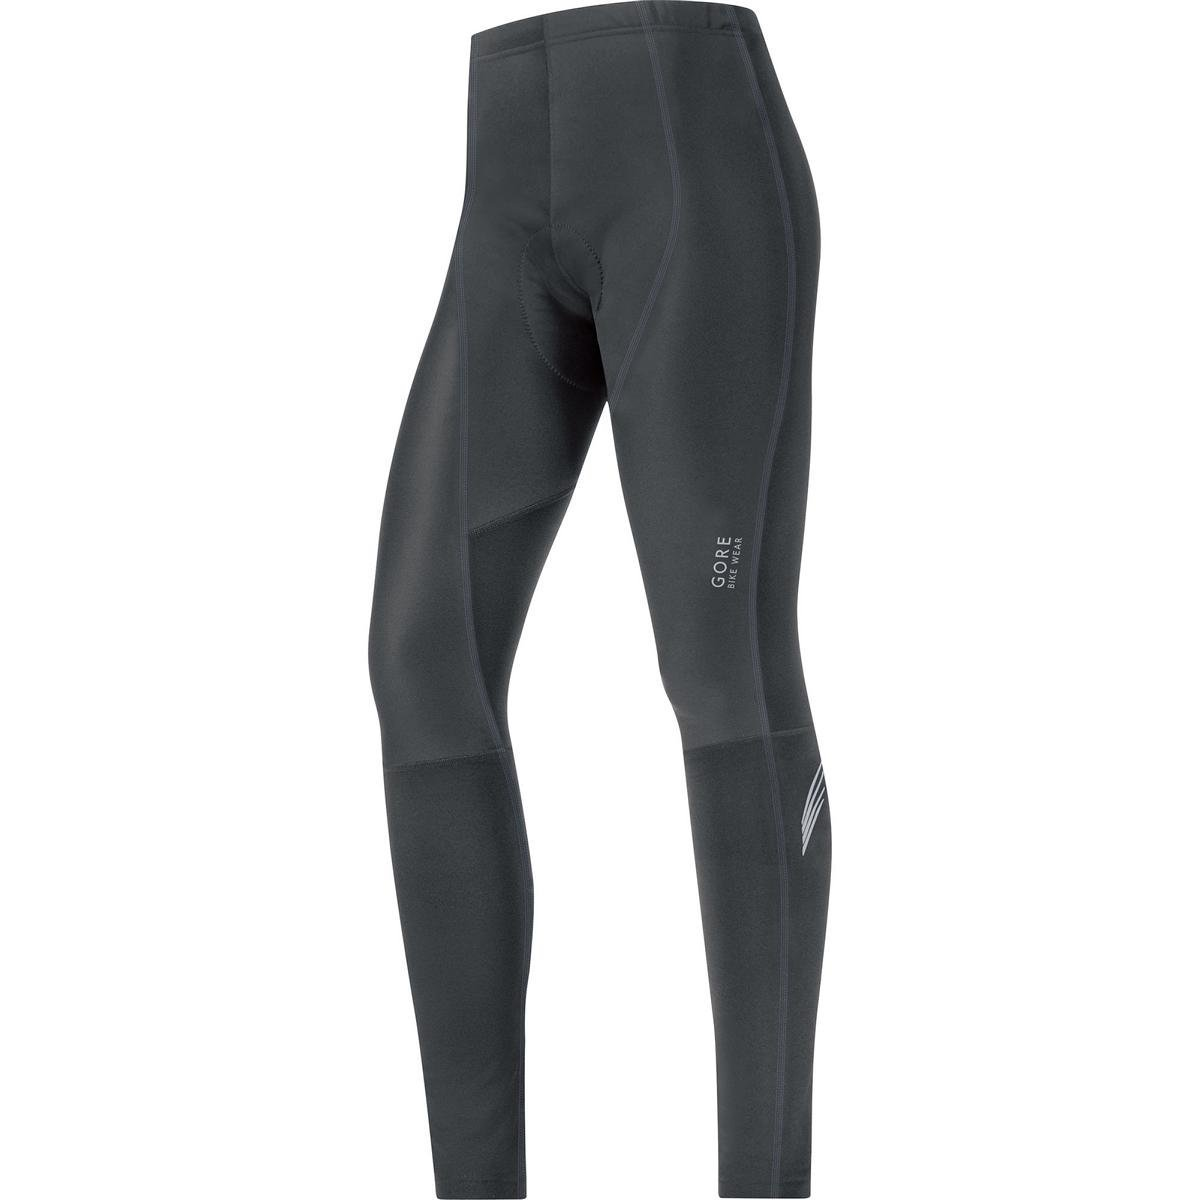 GORE BIKE WEAR Women's  lady WINDSTOPPER Soft Shell Tights+, Black, Small